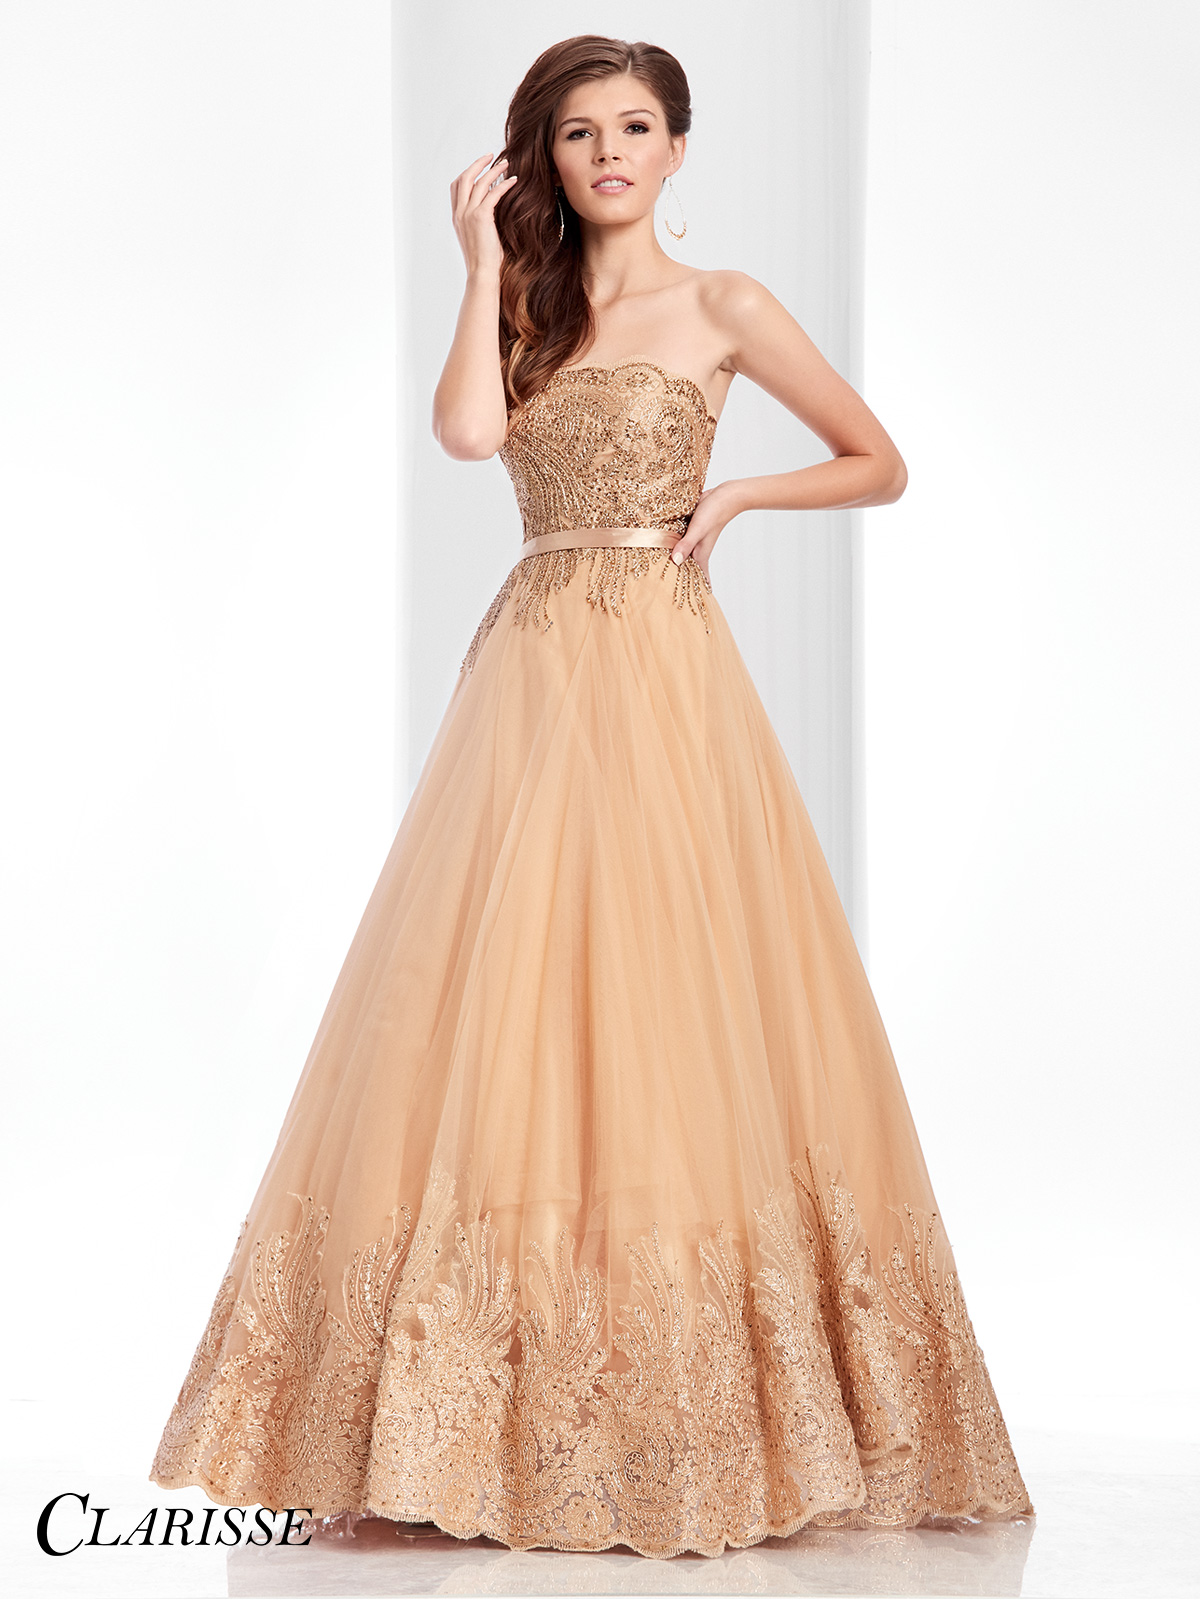 Ball Gown Prom Dresses Online at Promgirl.net